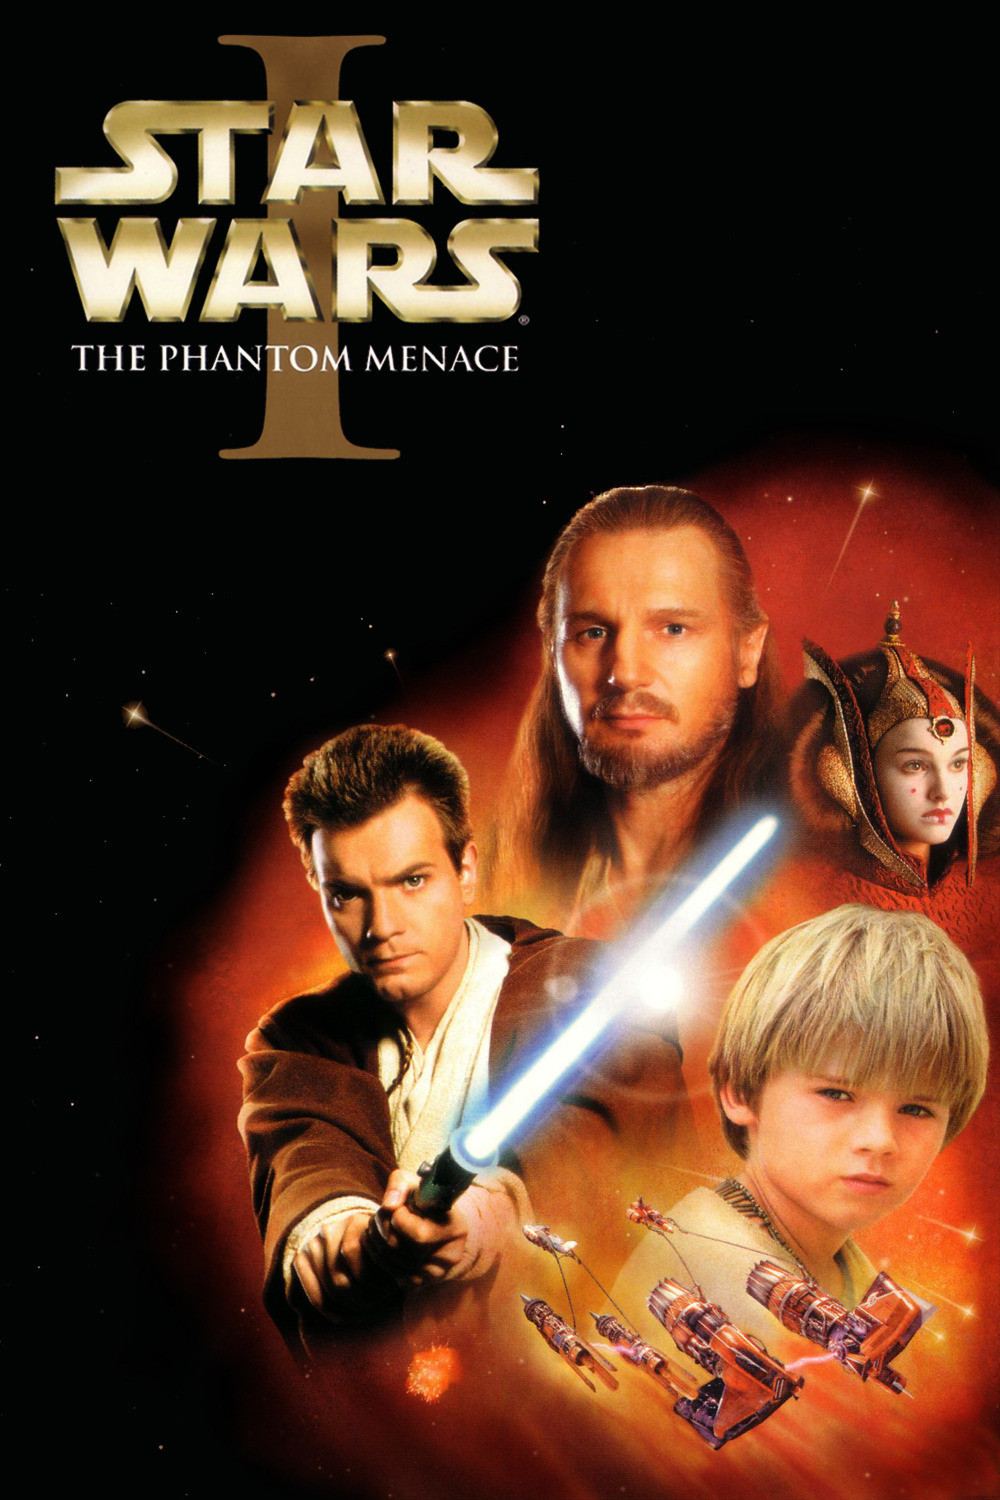 Star wars episode i the phantom menace cast anakin